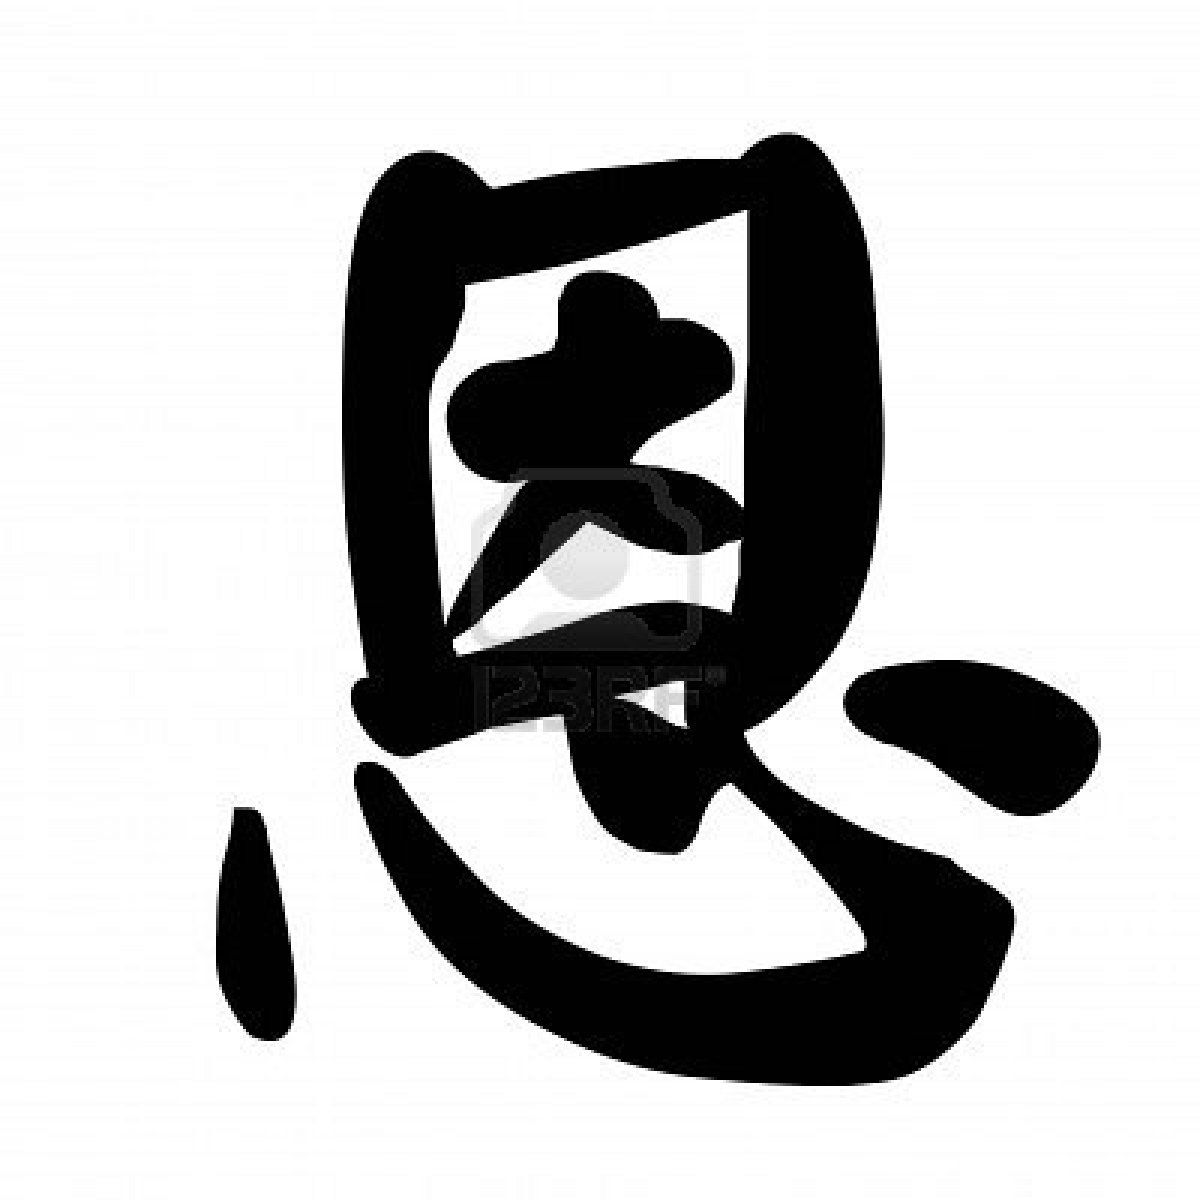 Sign for grace in chinese calligraphy symbology symbols and sign for grace in chinese calligraphy biocorpaavc Images